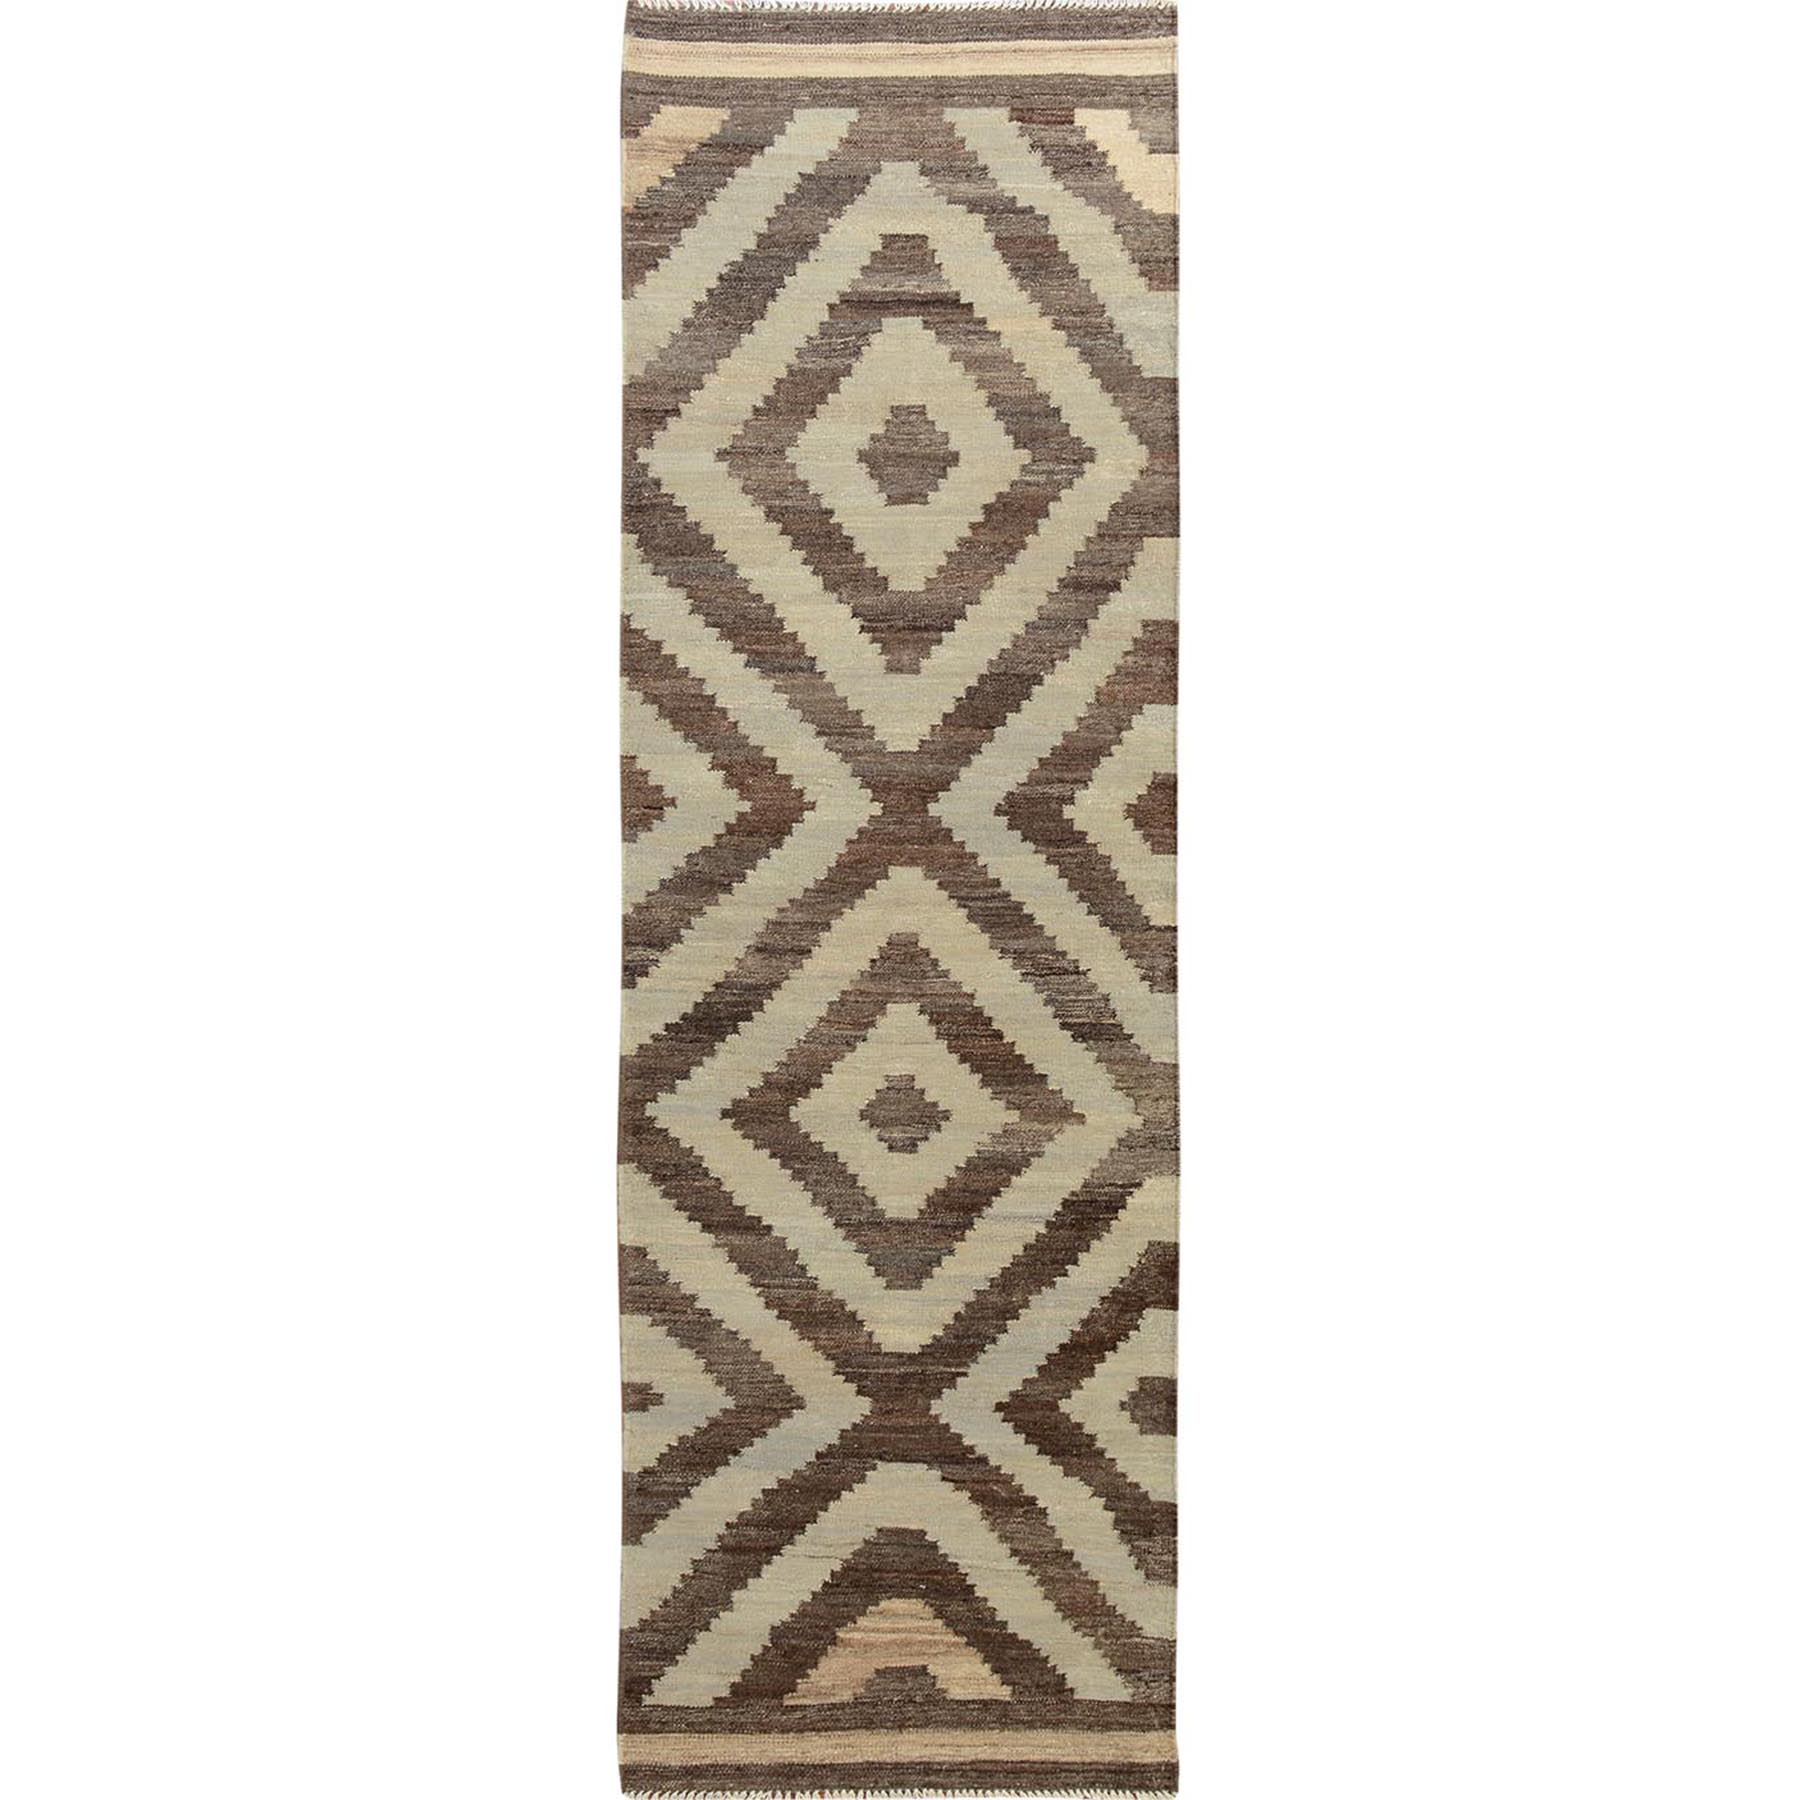 Natural Wool Reversible Afghan Kilim Flat weave Pure Wool Runner Hand Woven Oriental Rug